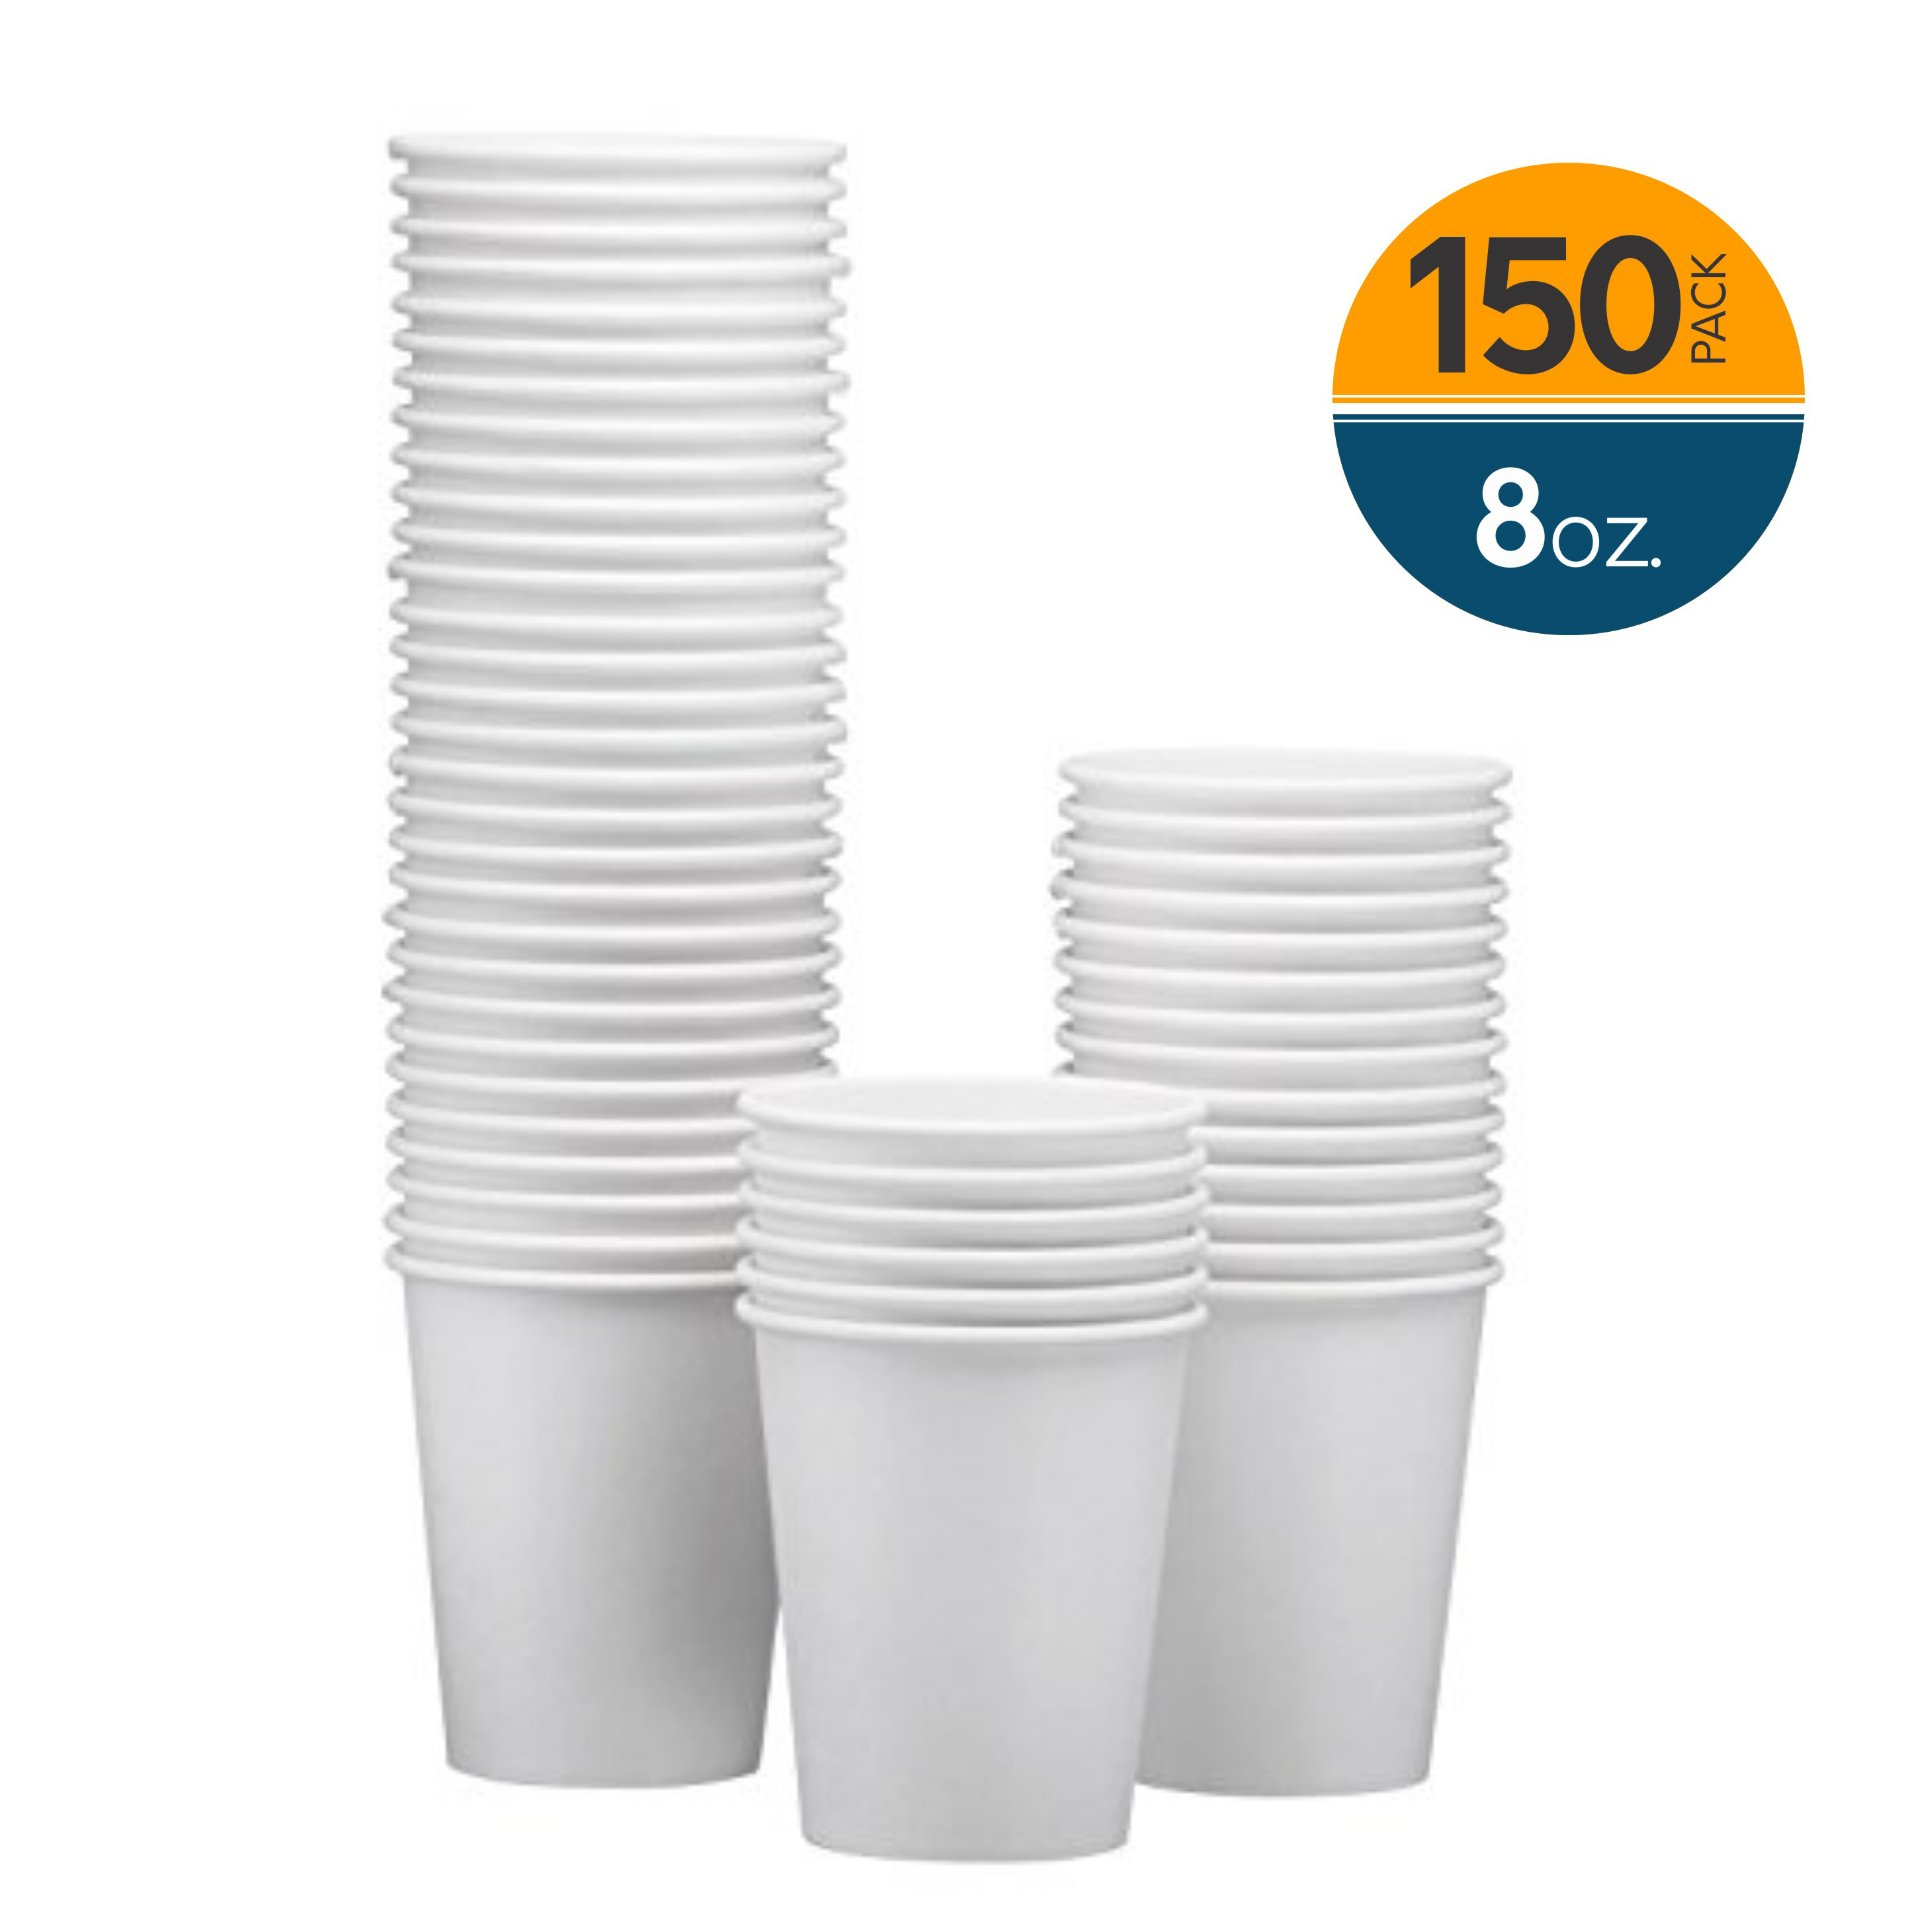 NYHI 150-Pack 8oz White Paper Disposable Cups – Hot/Cold Beverage Drinking Cup for Water, Juice, Coffee or Tea – Ideal for Water Coolers, Party, or Coffee On the Go'